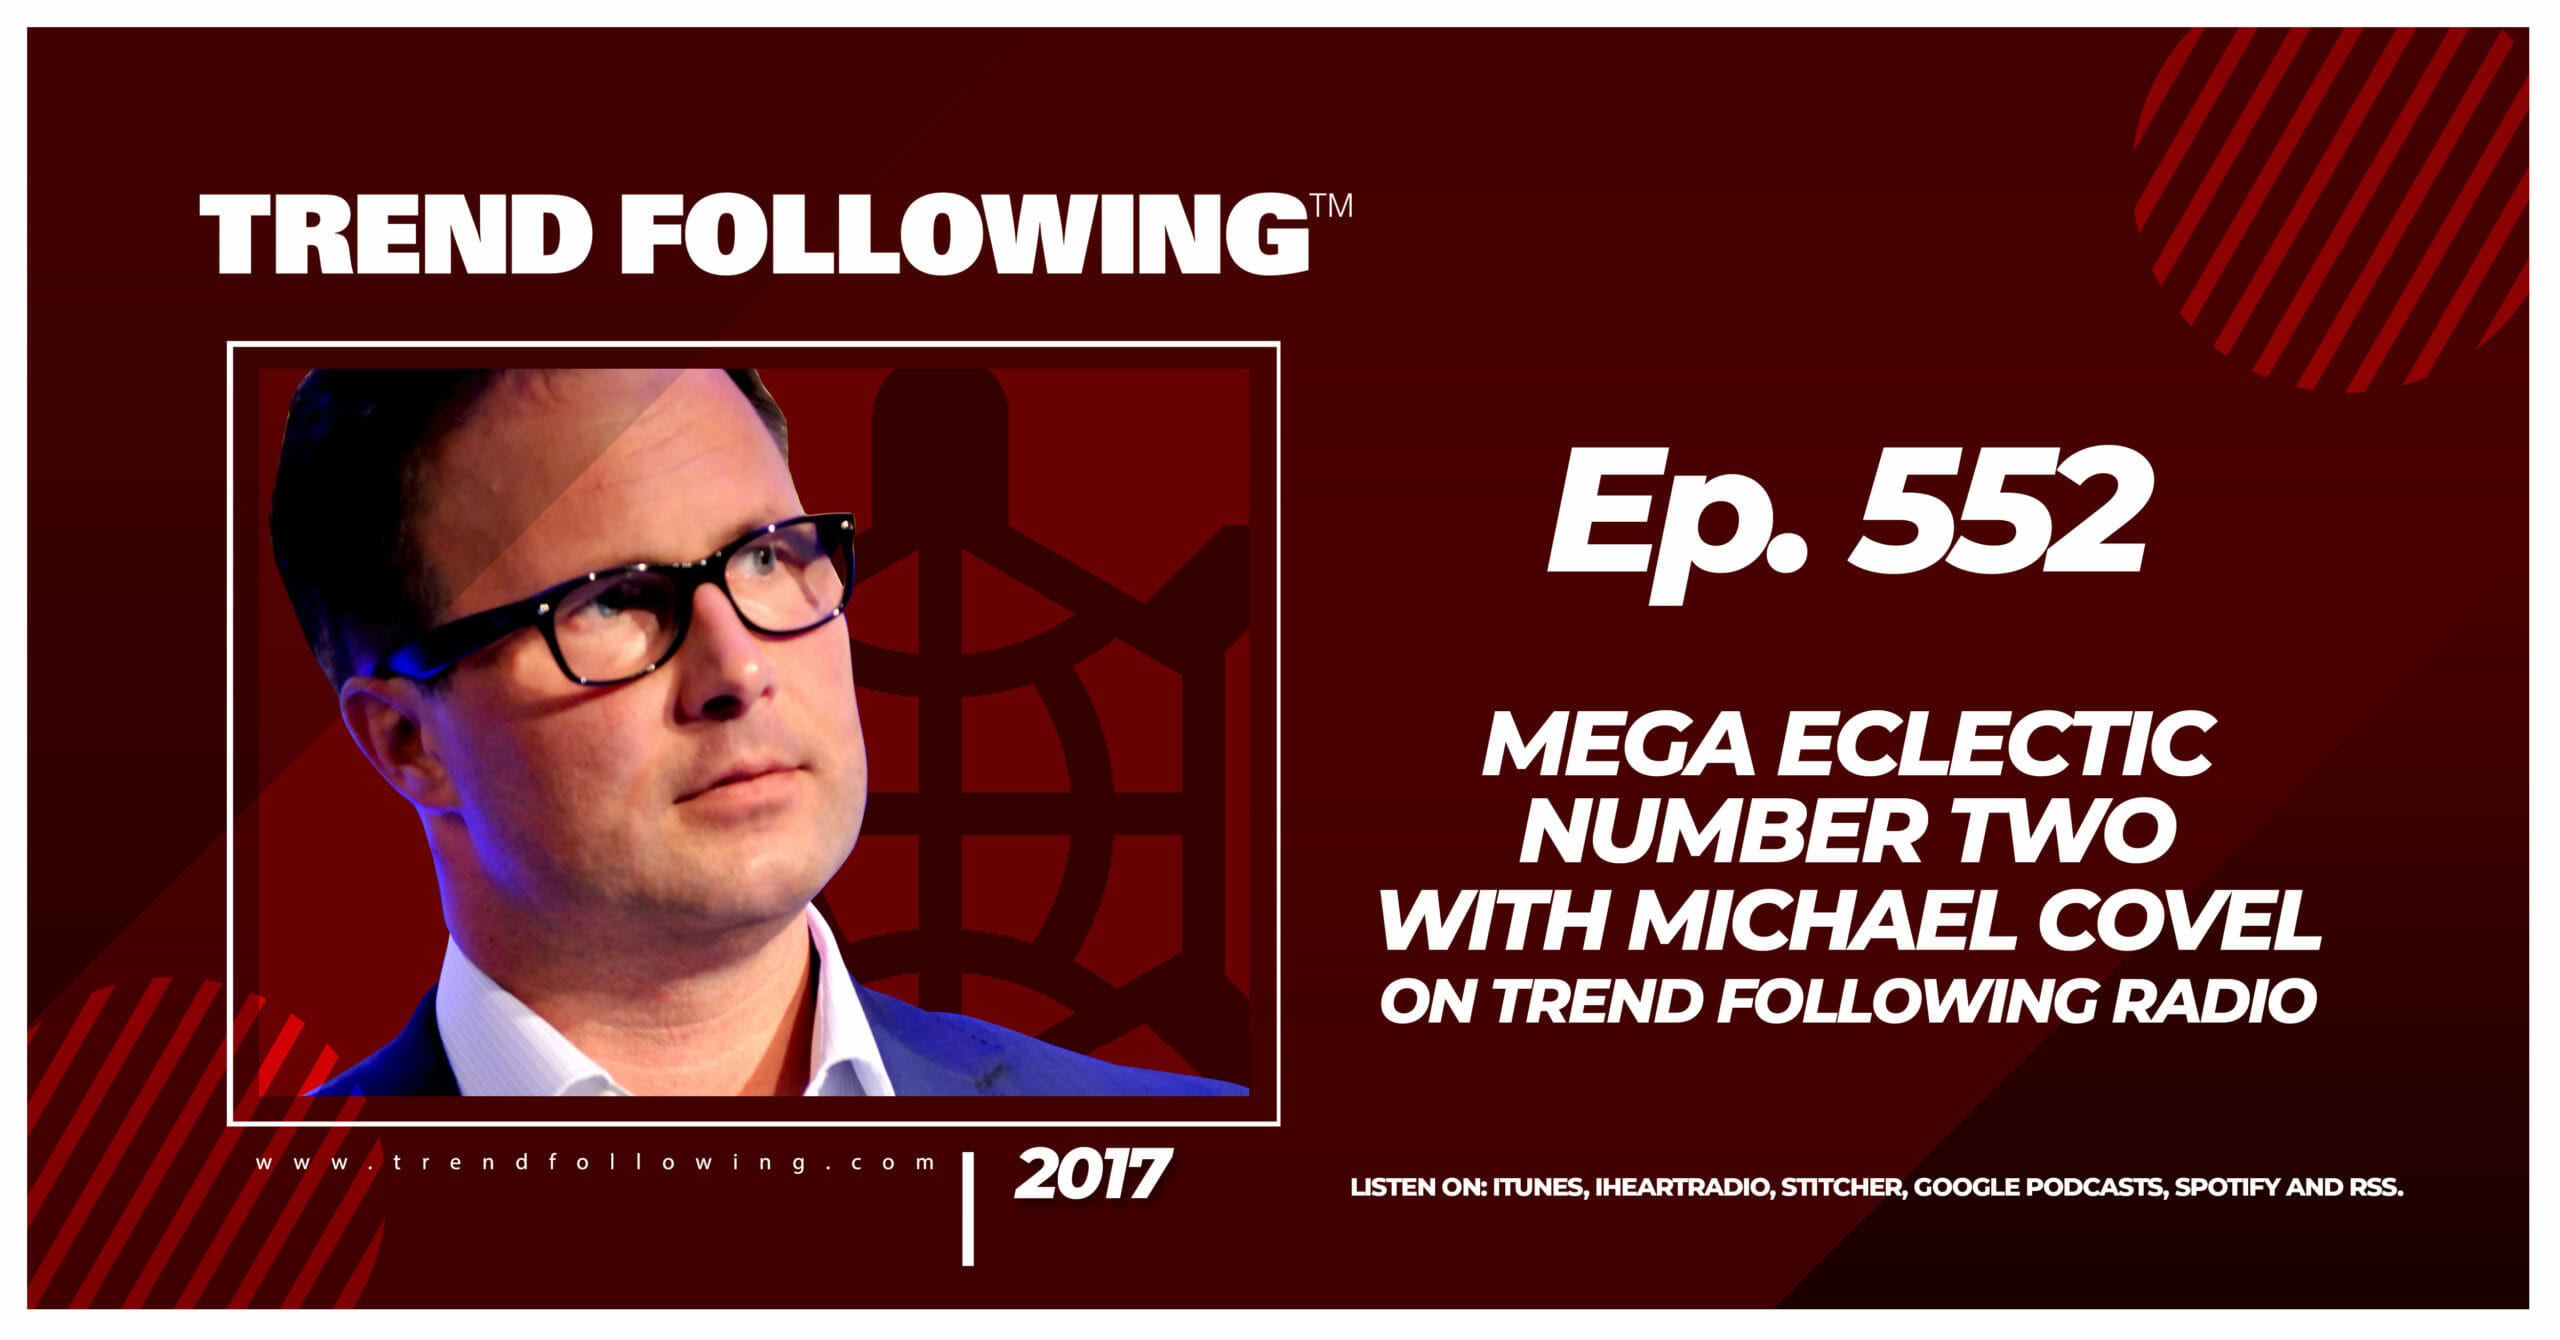 Mega Eclectic Number Two with Michael Covel on Trend Following Radio